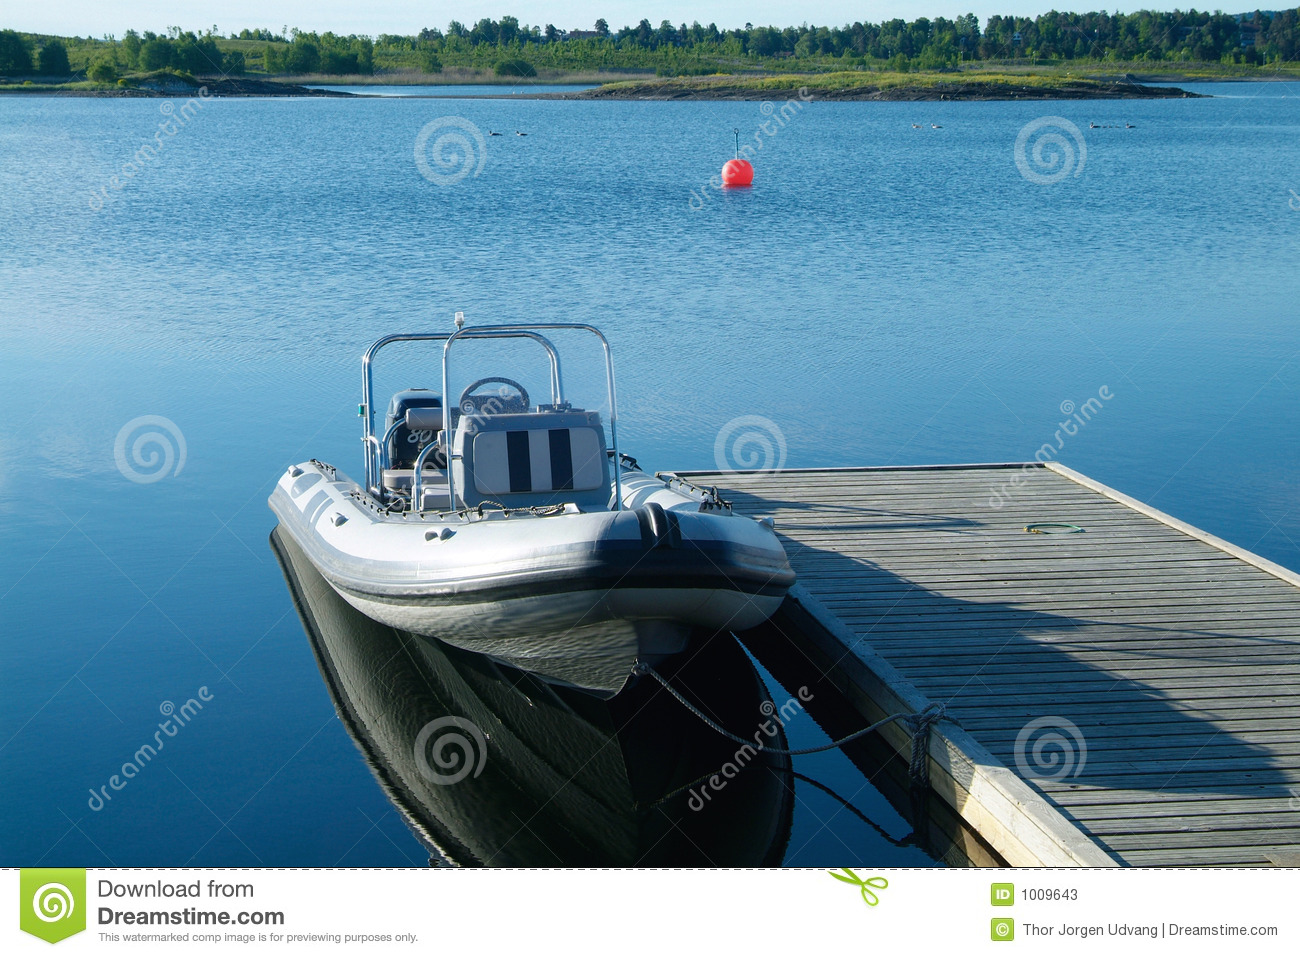 Rigid Inflatable Boat At A Pier Stock Photos - Image: 1009643